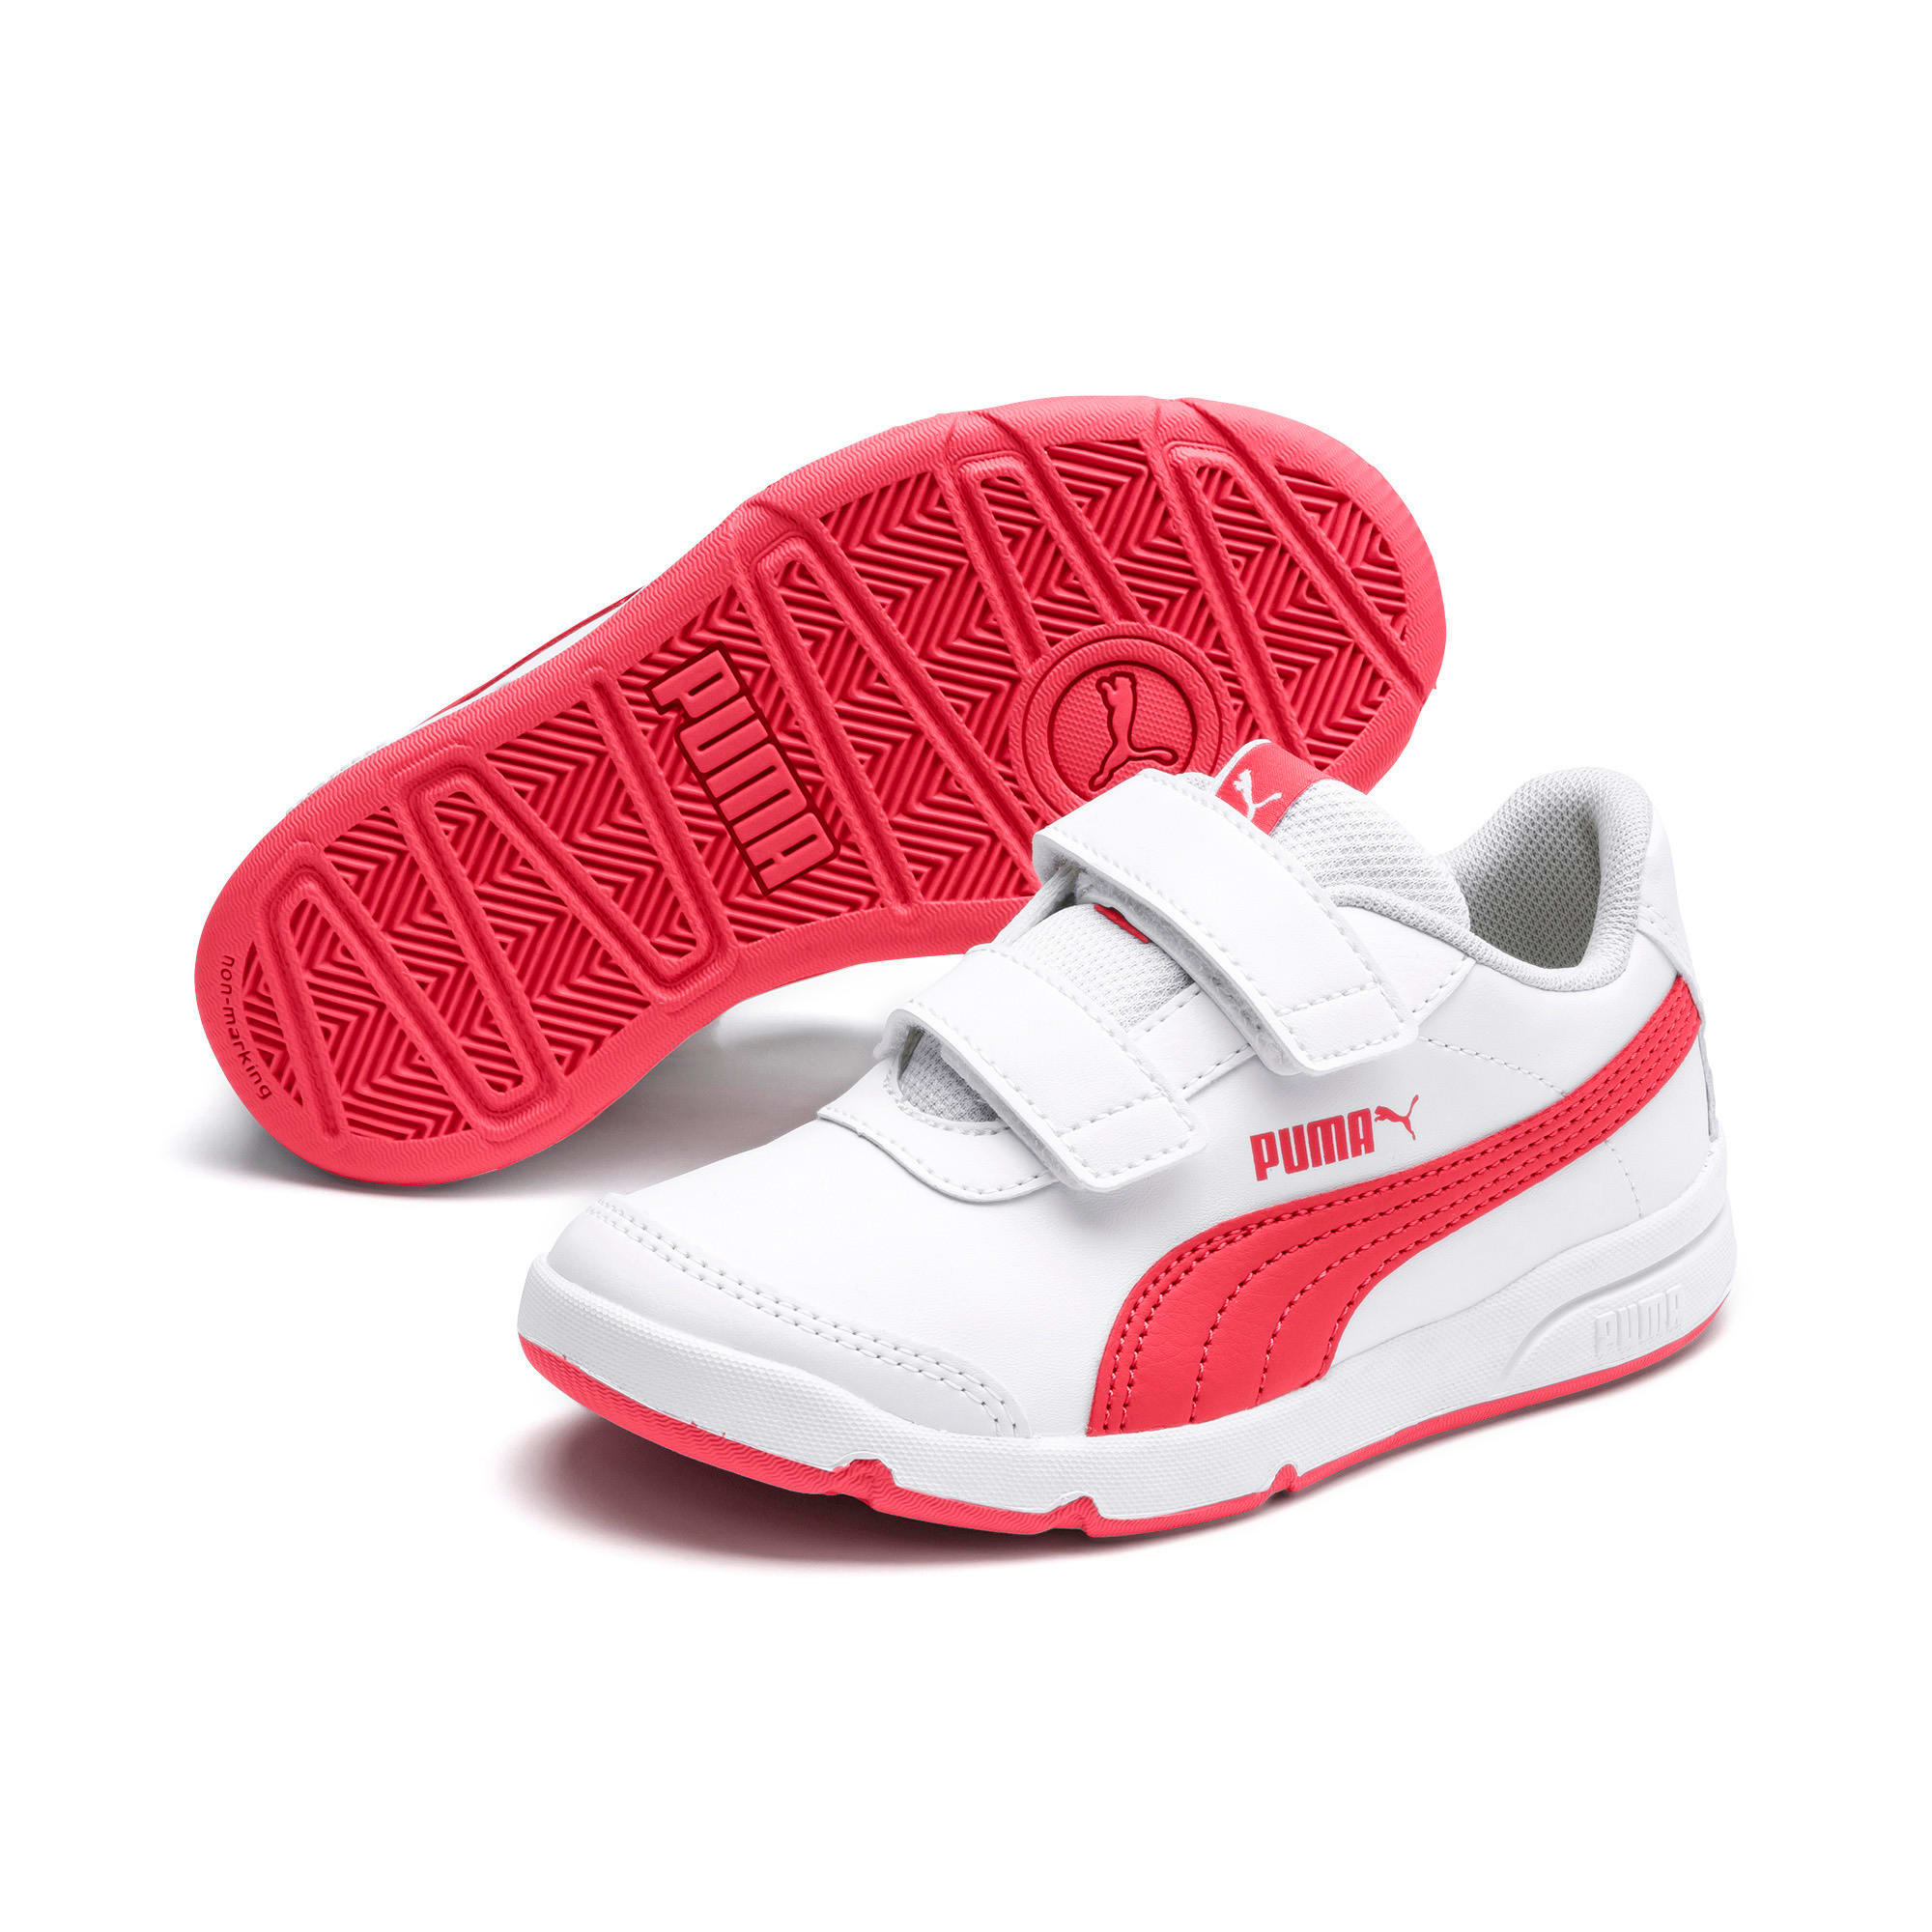 Stepfleex 2 SL VE V Kids' Trainers, White-Calypso Coral-G Gray, large